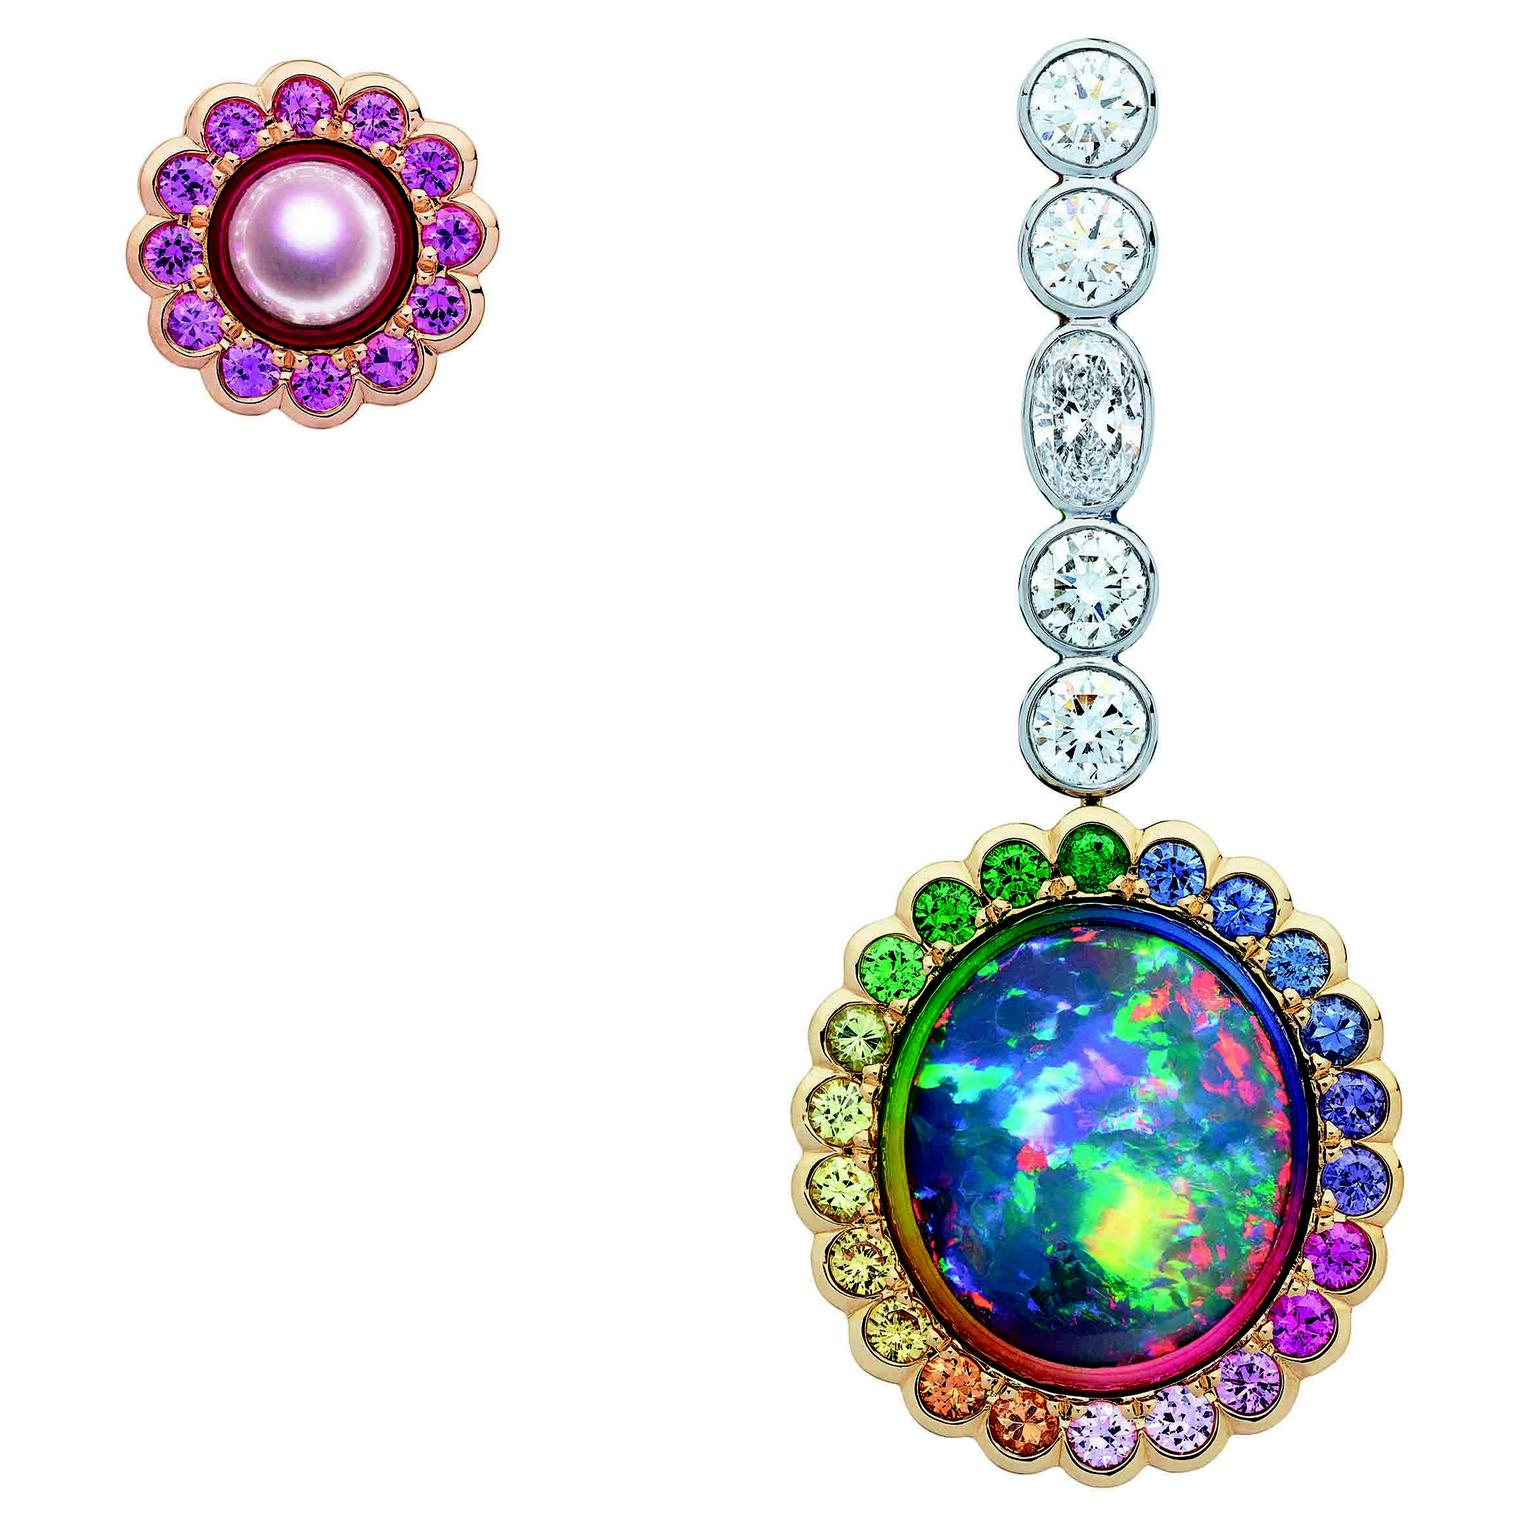 Mismatched Dior et Moi black opal and pink pearl earrings